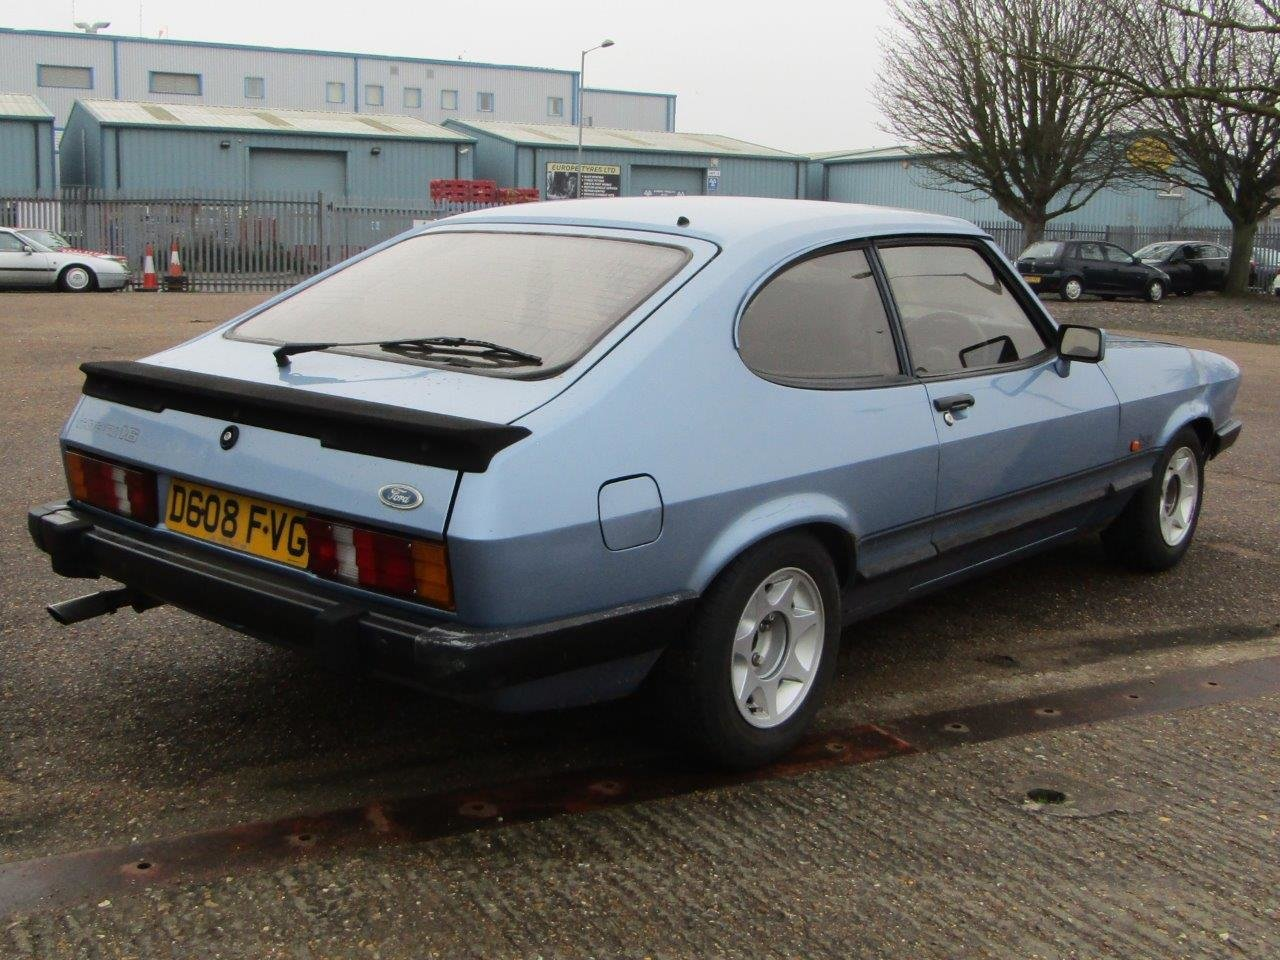 1986 Ford Capri 1.6 Laser at ACA 27th and 28th February For Sale by Auction (picture 6 of 11)